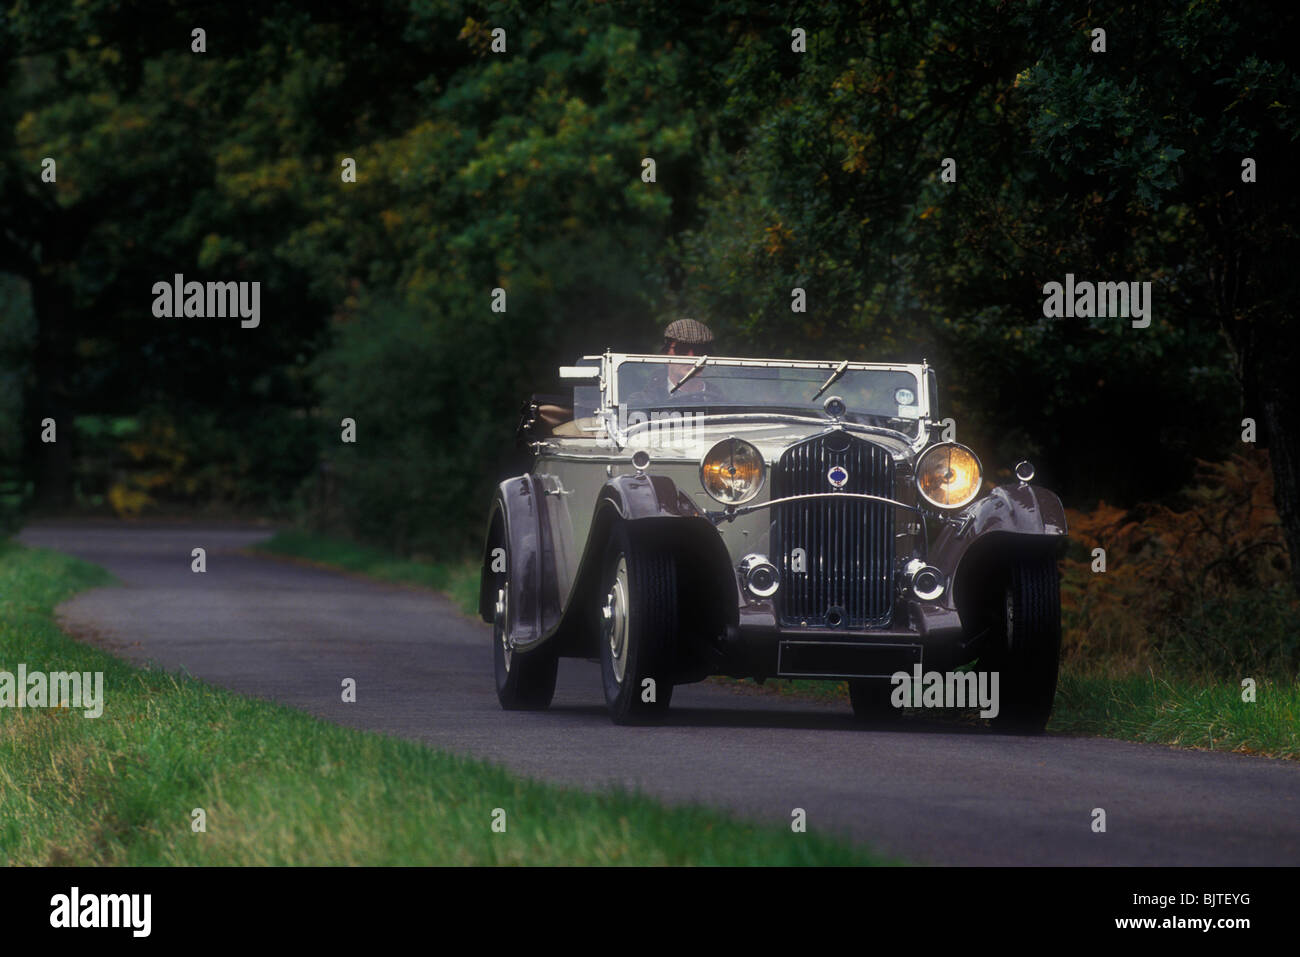 Delage D8 SS French luxury car of the early 1930's - Stock Image